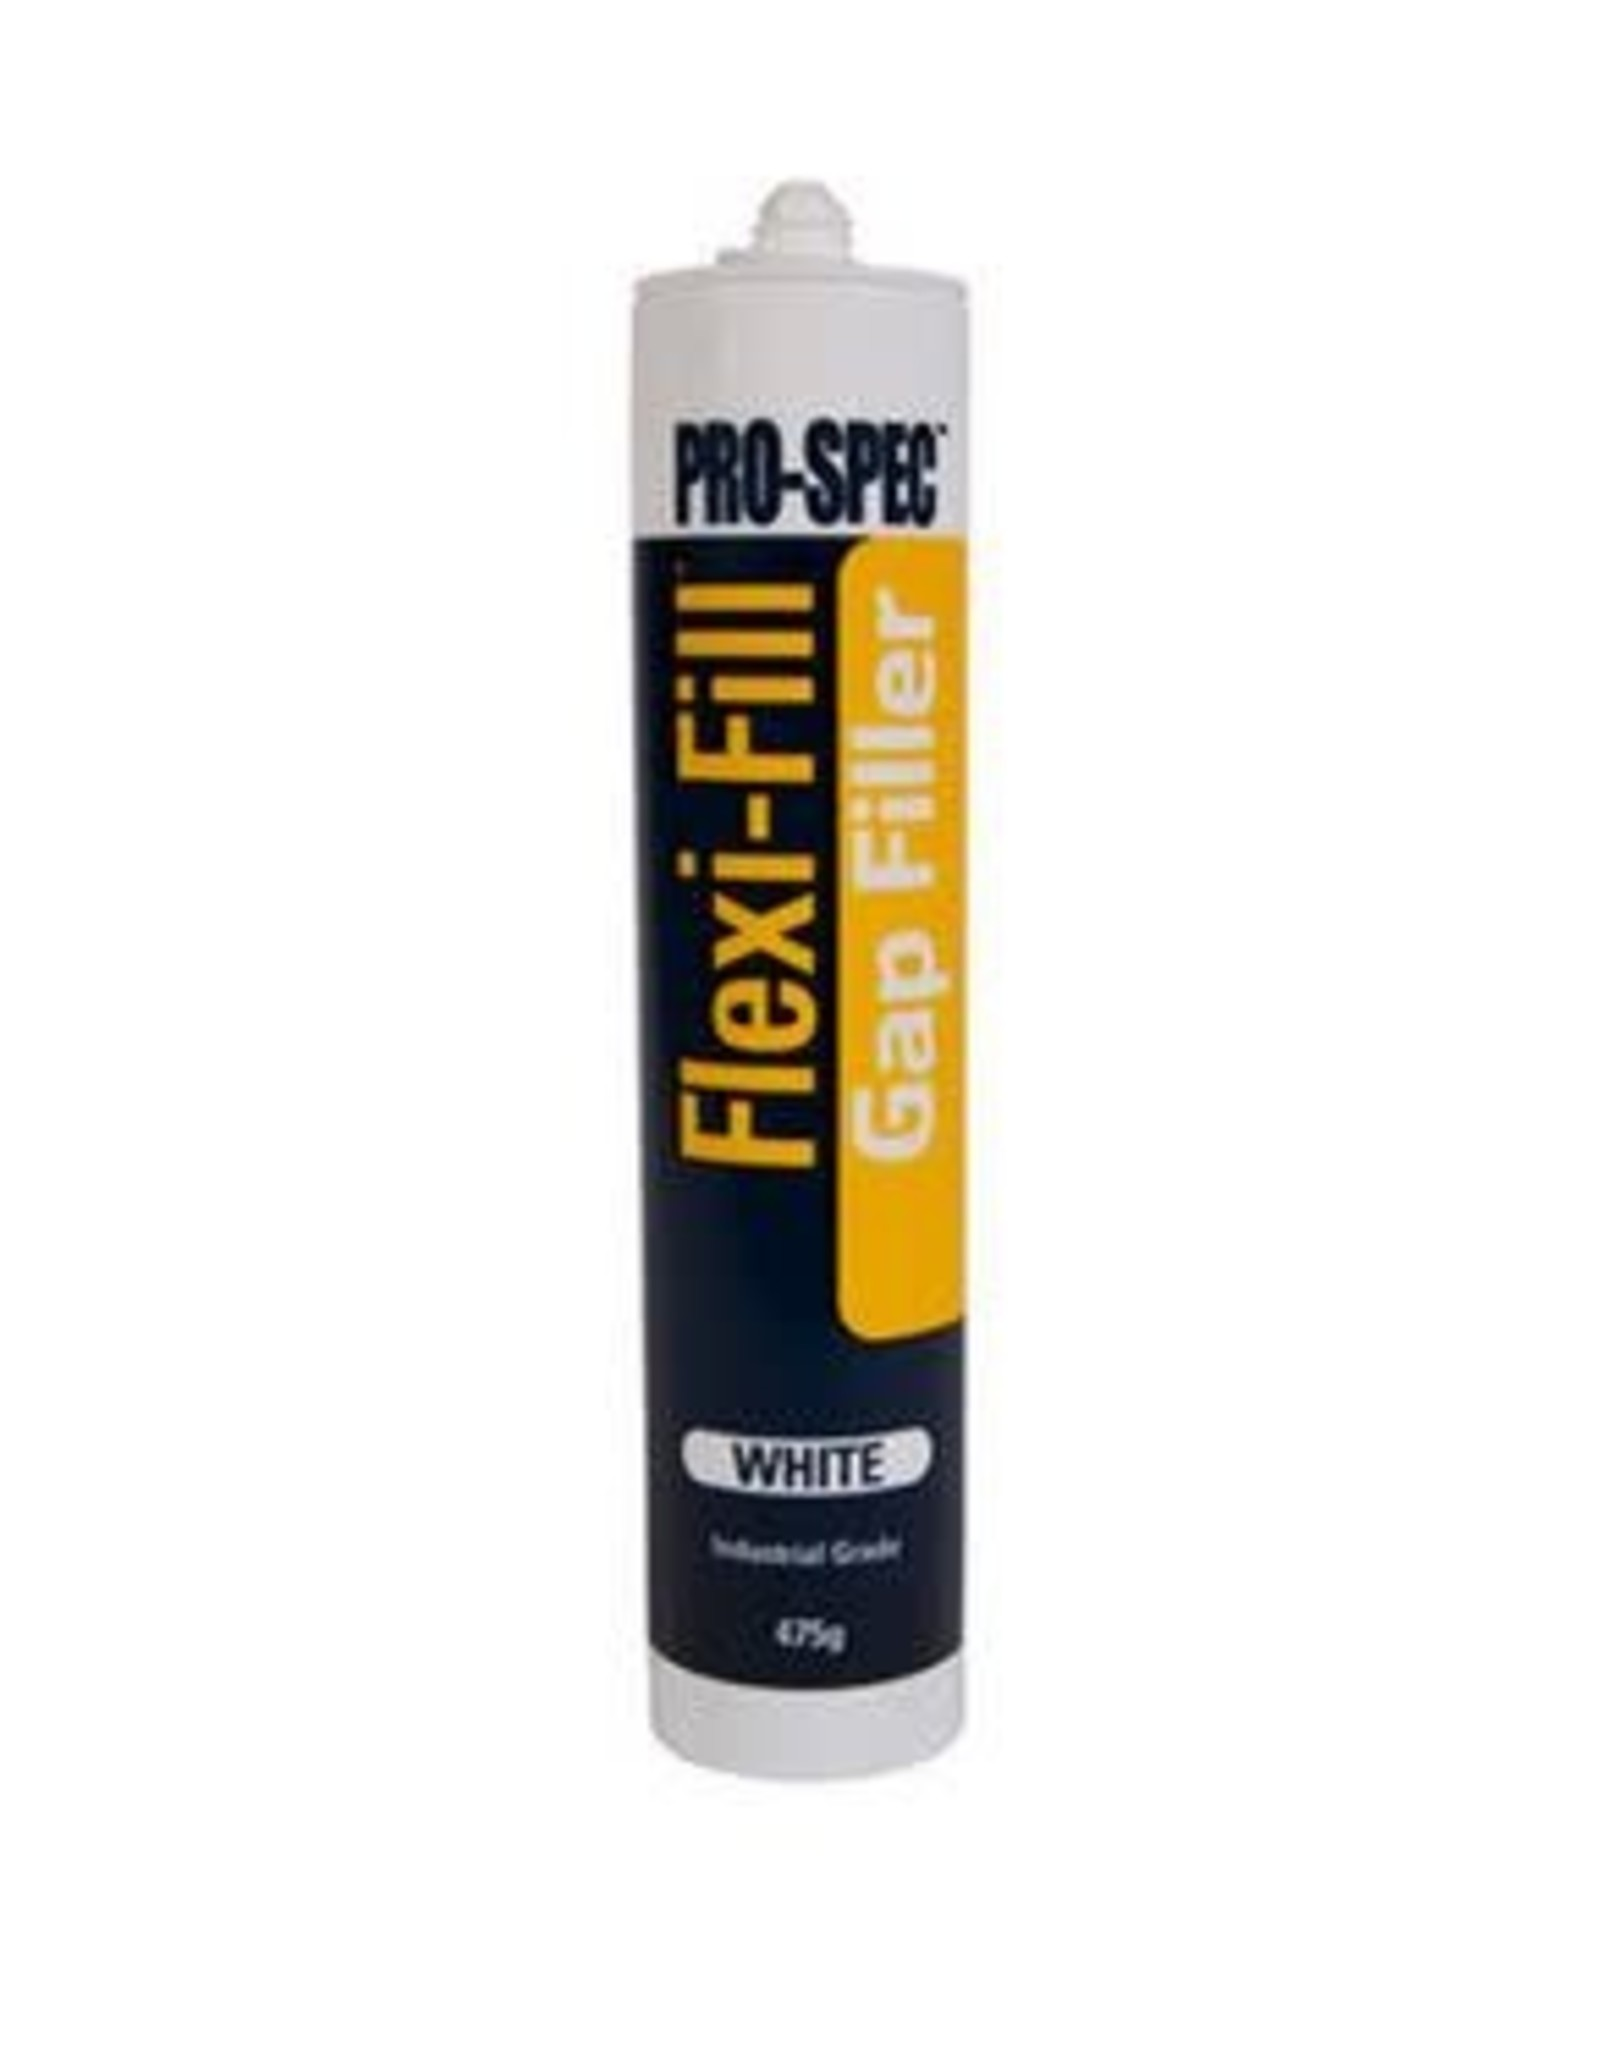 Pro-Spec Flex-Fill Gap Filler White 475g